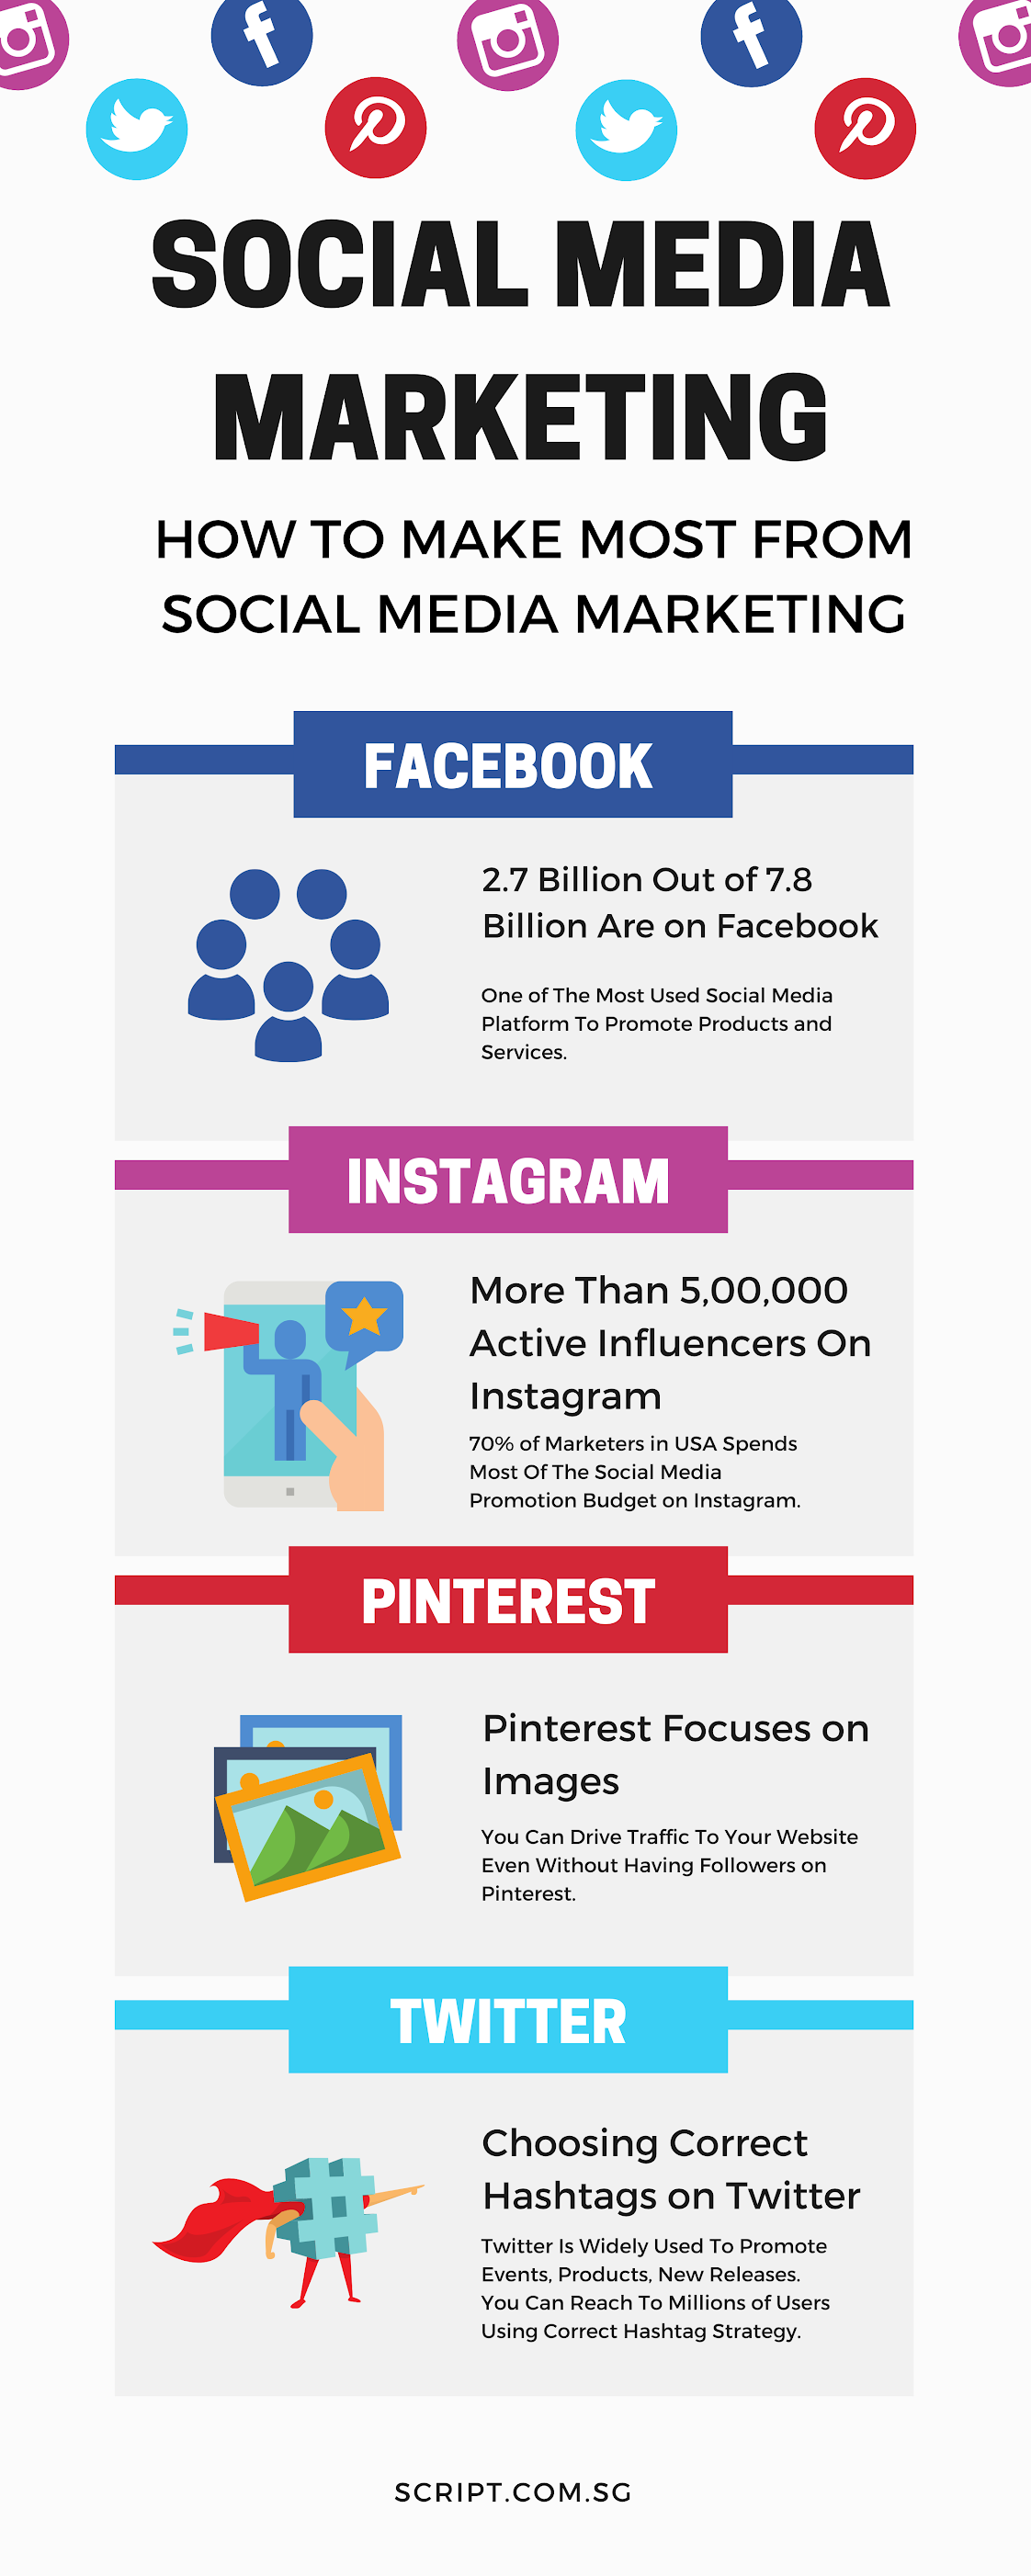 HOW TO MAKE MOST FROM SOCIAL MEDIA MARKETING